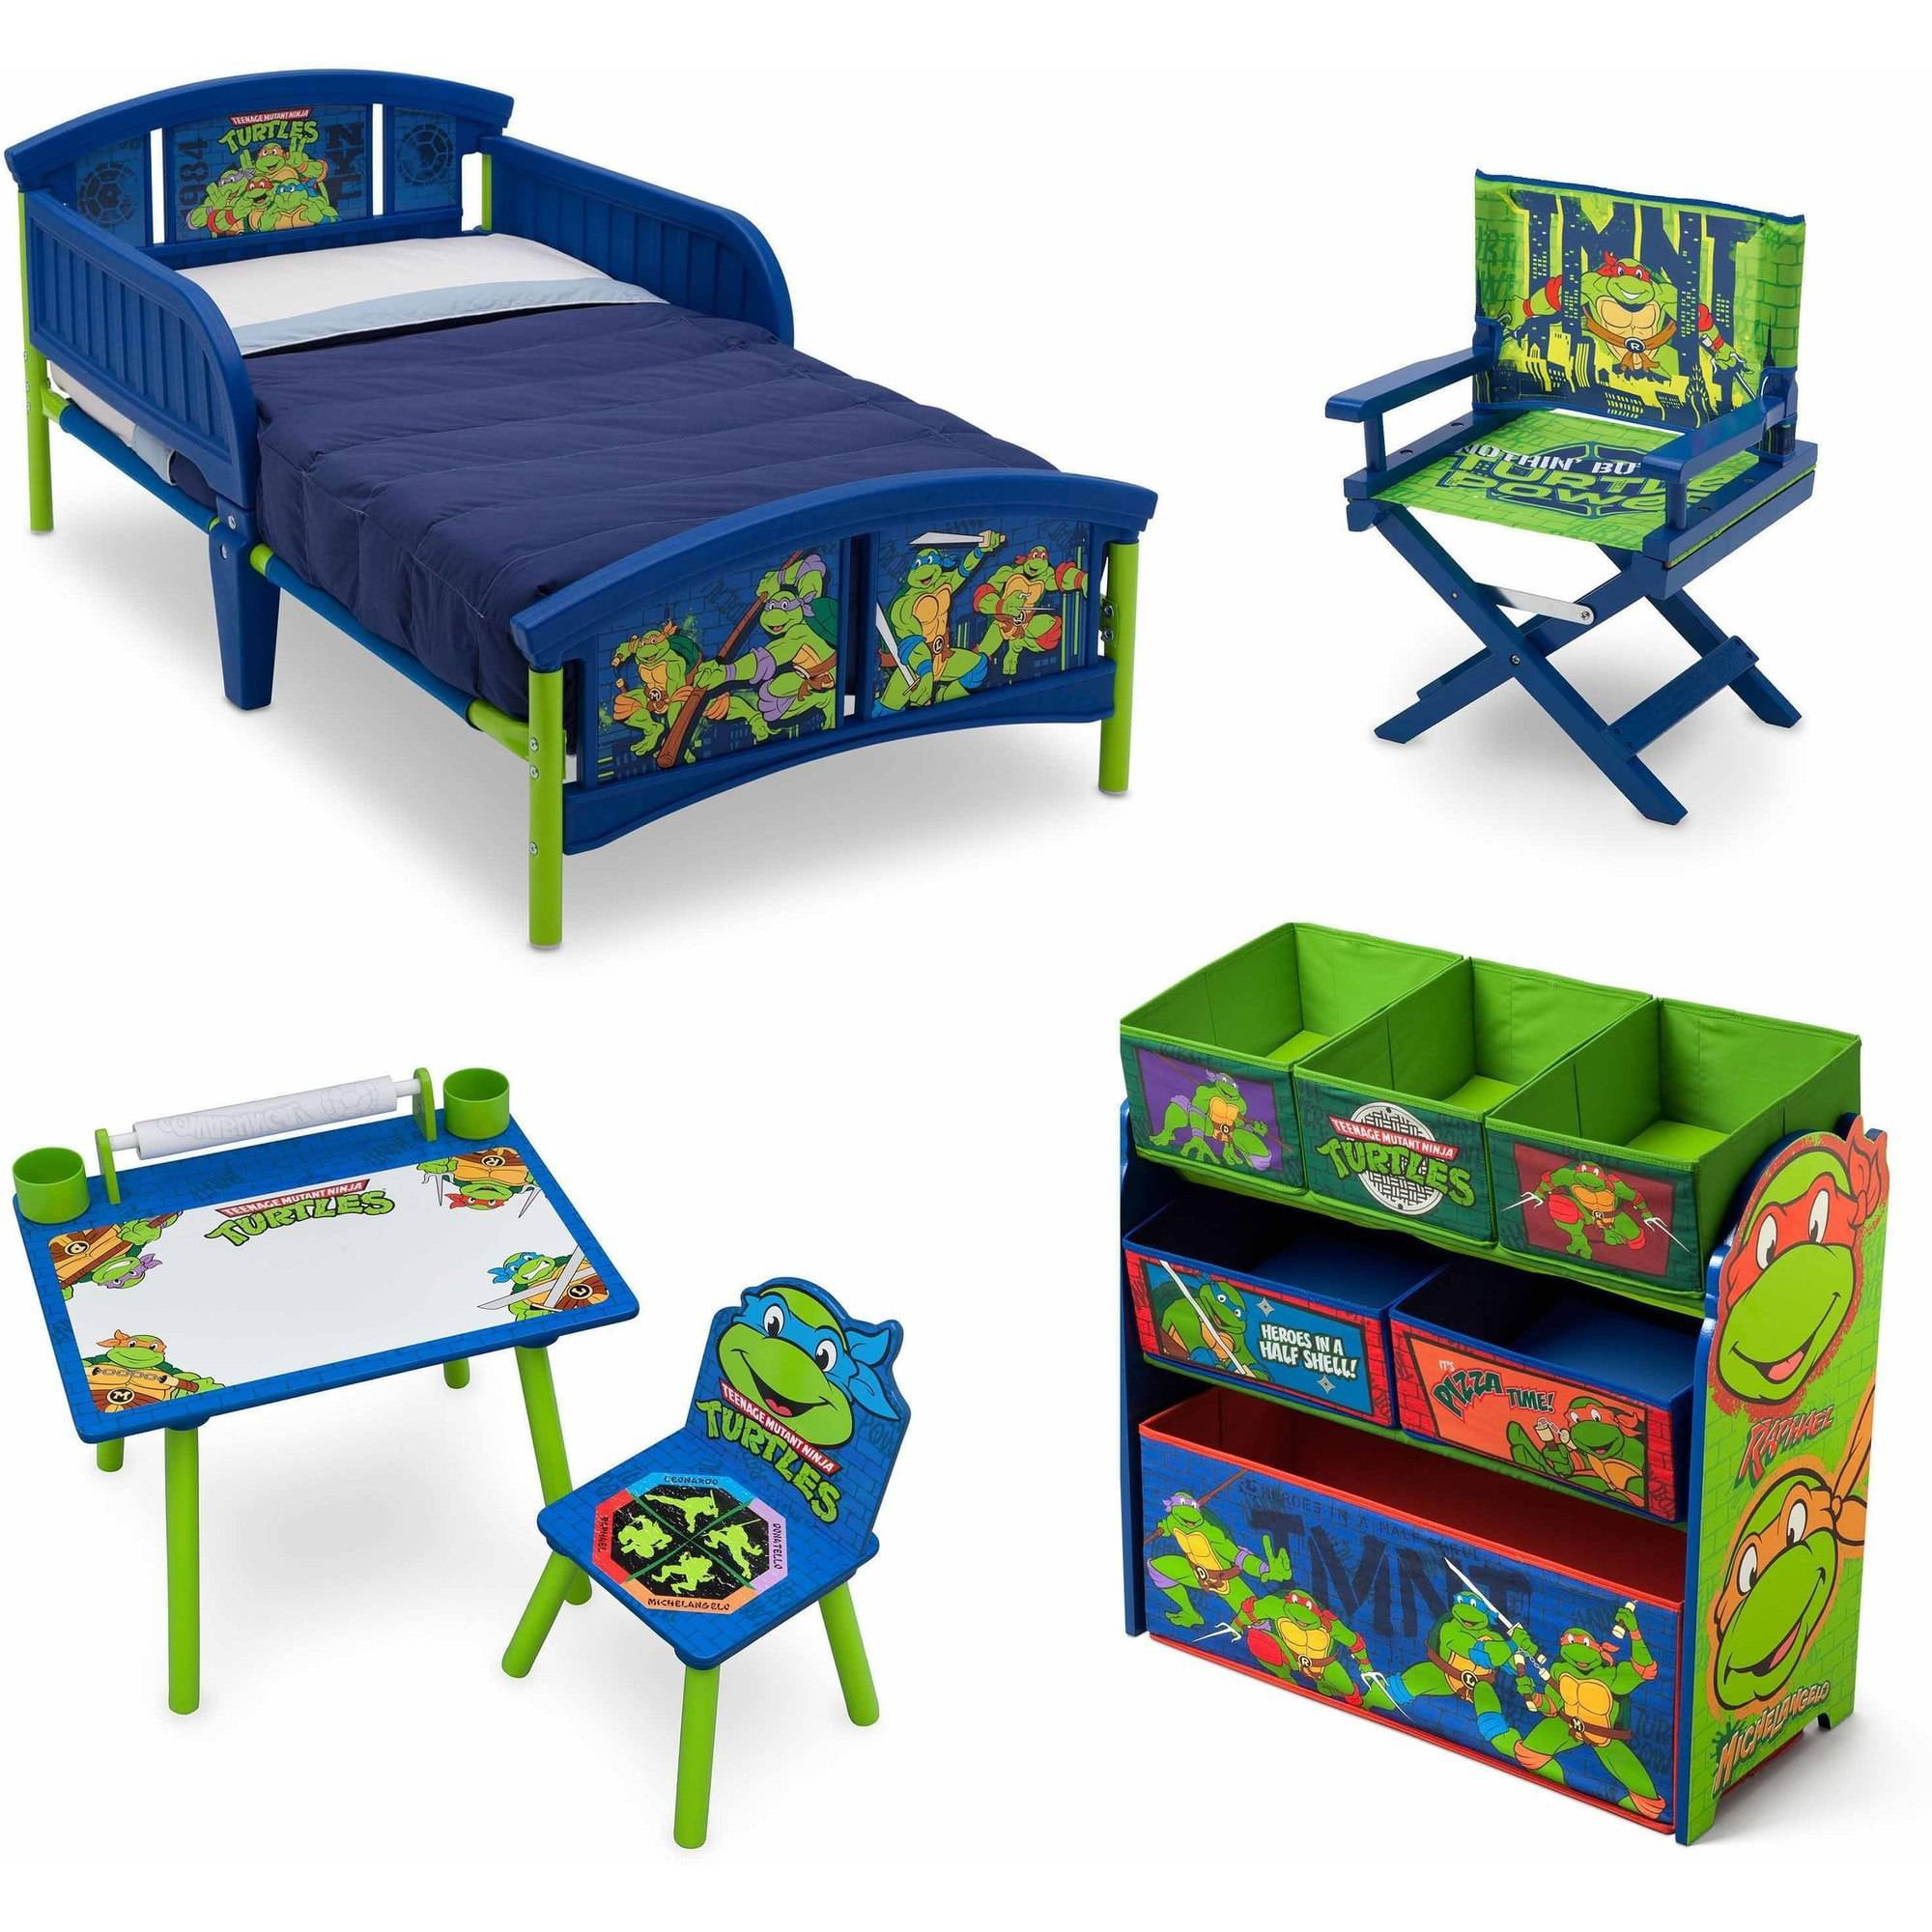 Ninja Turtle Toddler Bedding Set